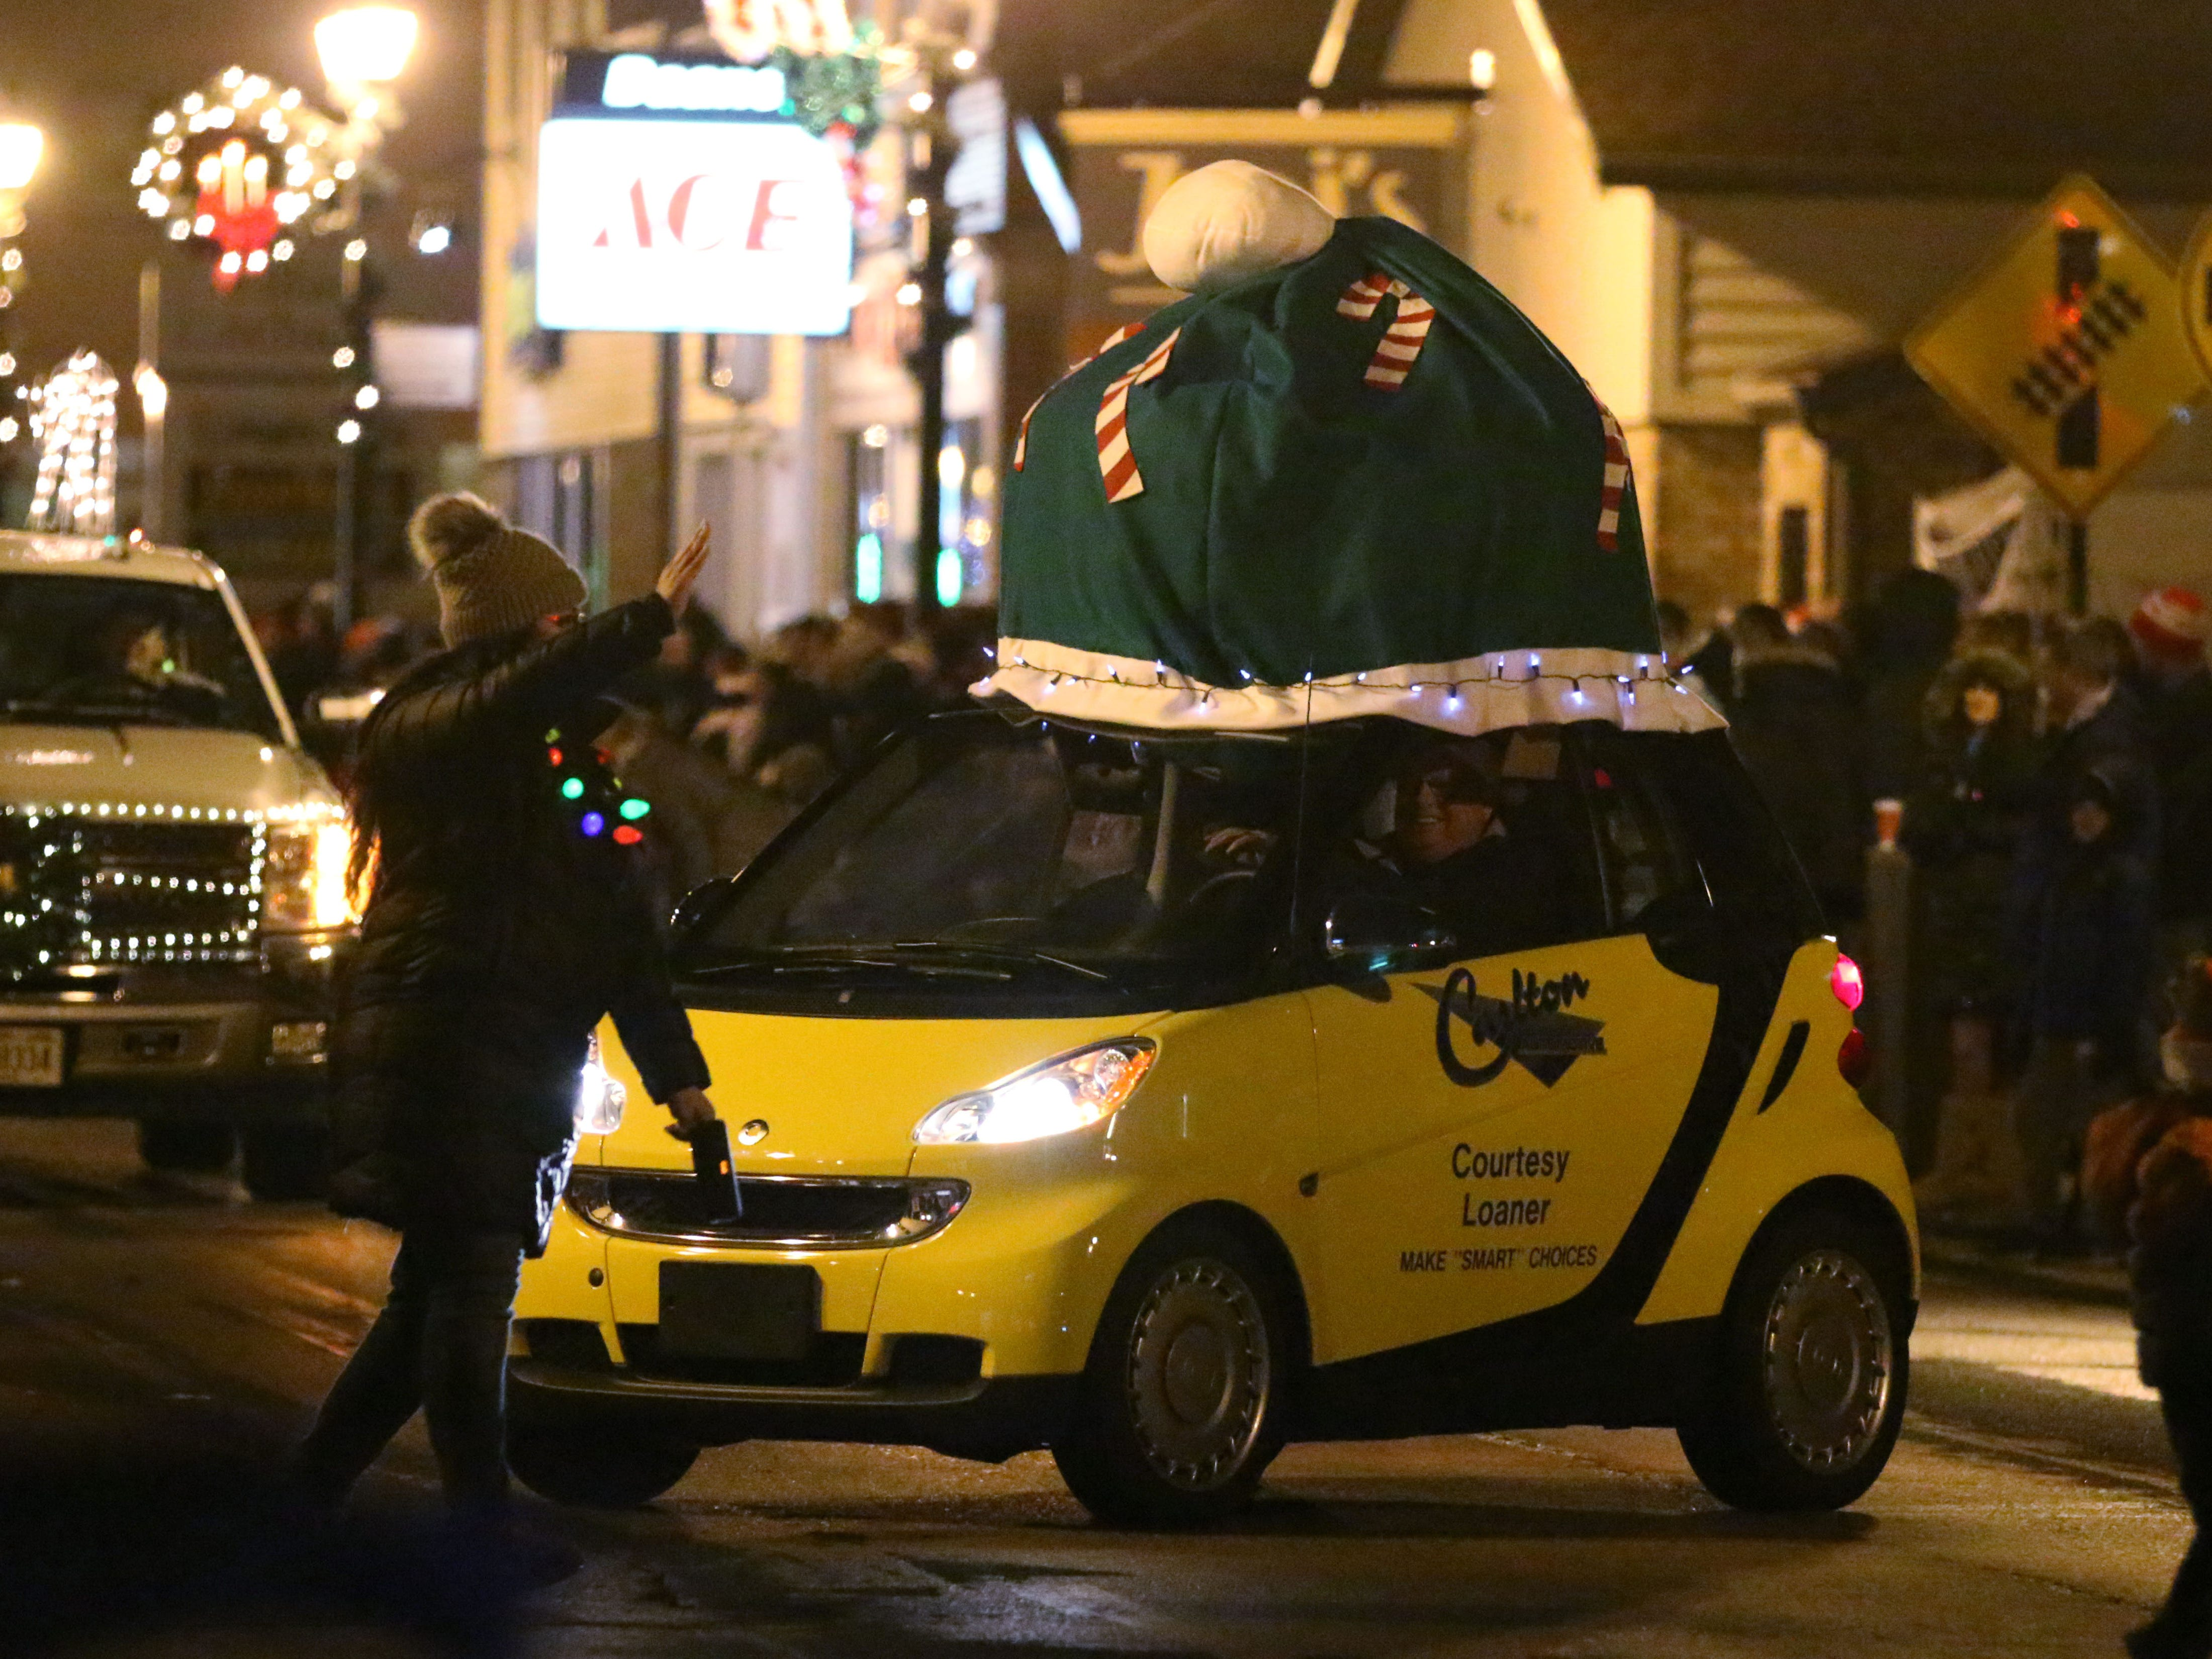 A Smart car had a hat on to stay warm during the Oostburg Christmas Parade, Saturday, November 24, 2018, in Oostburg, Wis.